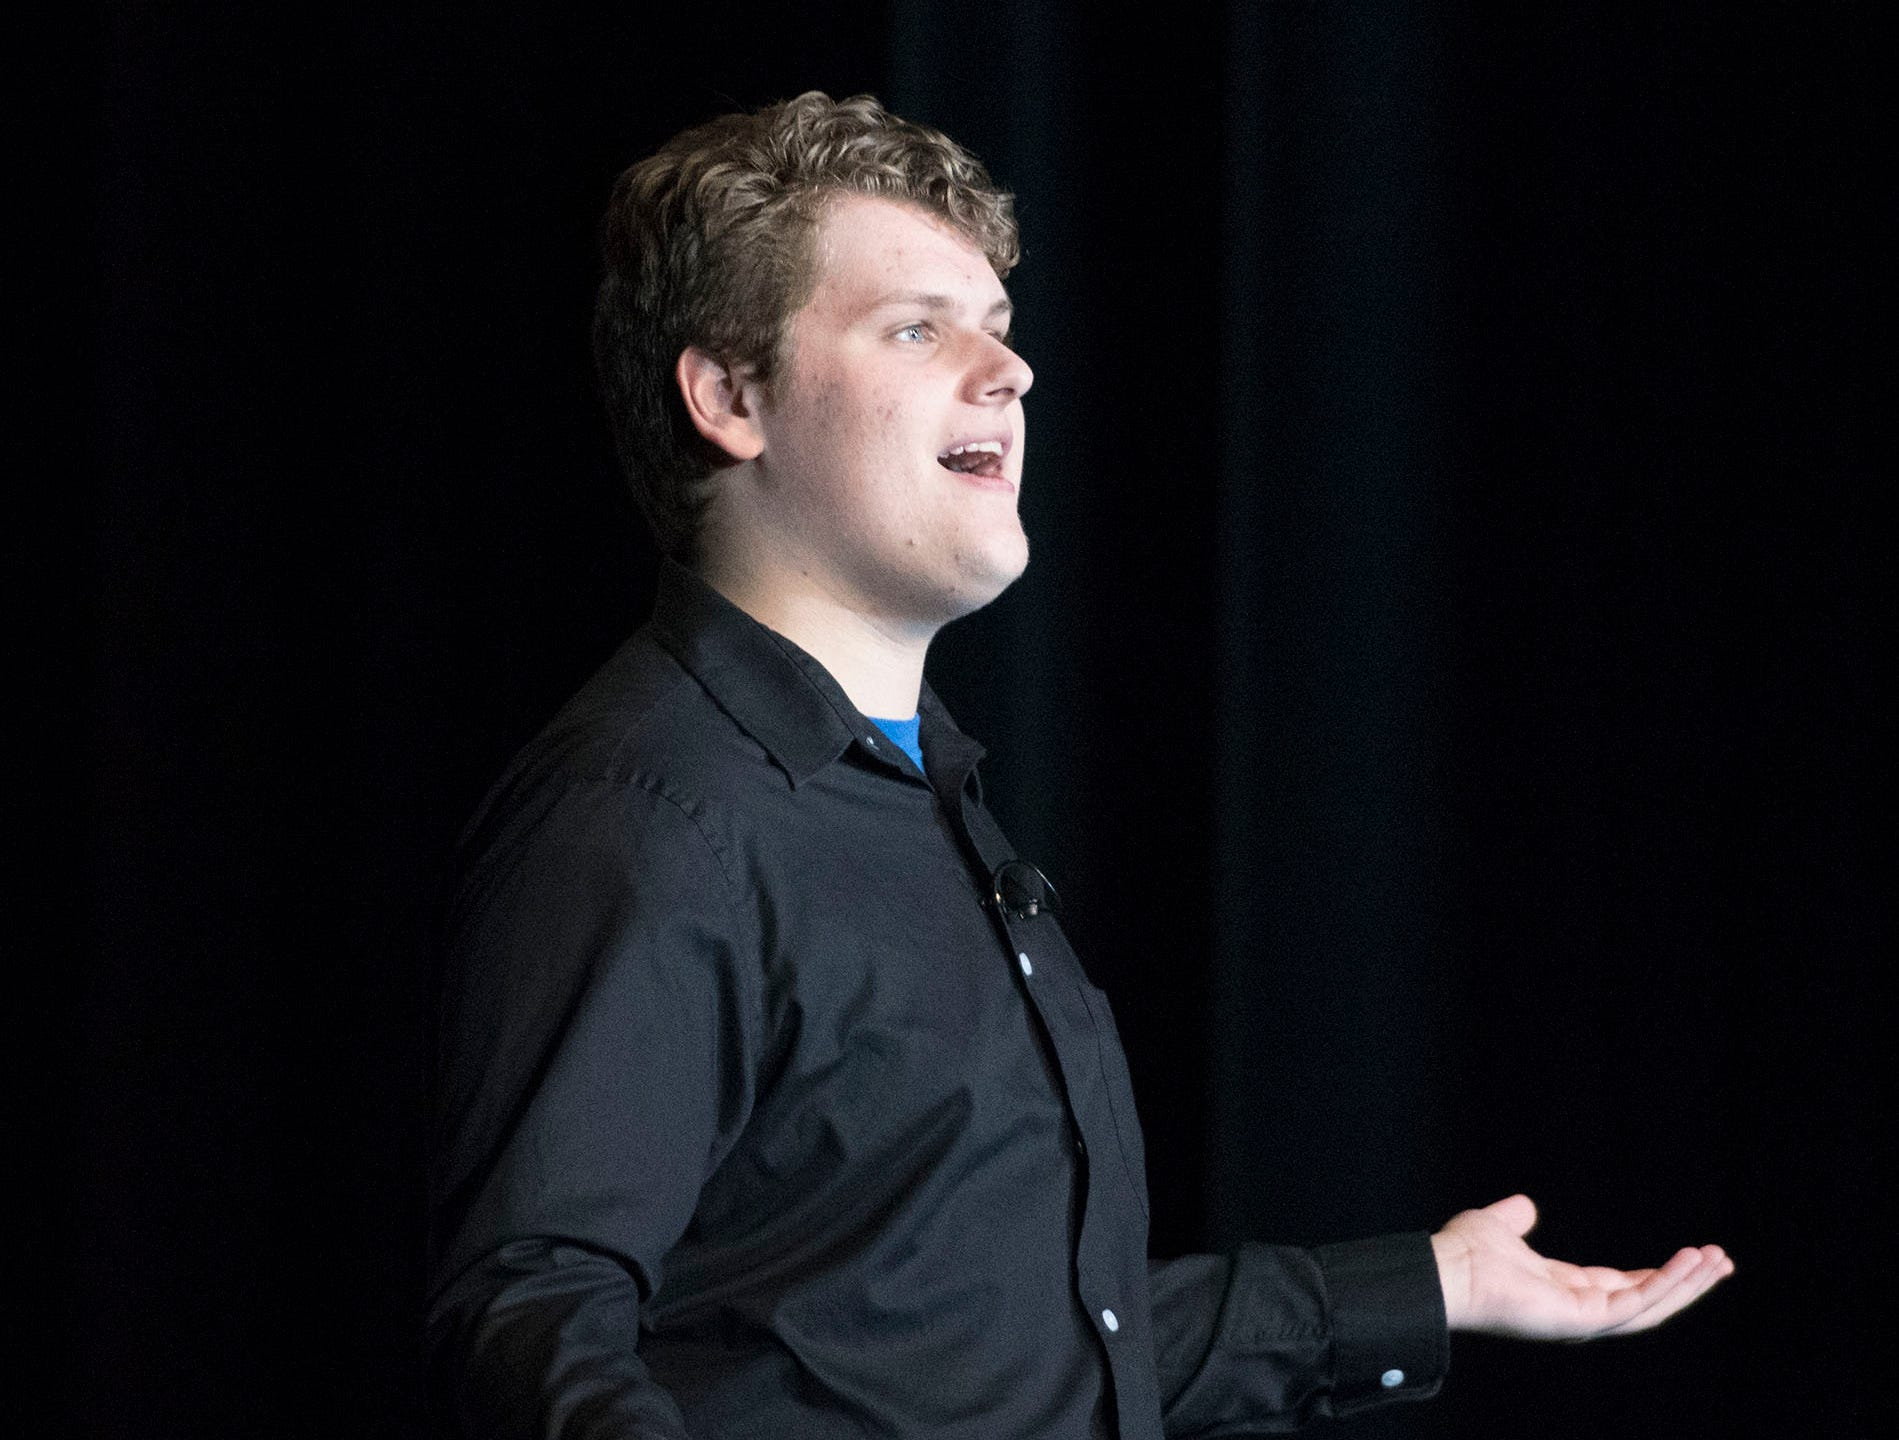 Drew Wible sings a solo during dress rehearsal. The CASHS Drama Club (in cooperation with Music Theatre International) will be performing Songs for a New World By Jason Robert Brown on Friday, November 9, 2018 at 7:30 PM and Saturday, November 10, 2018 at 2:30 and 7:30 PM. 